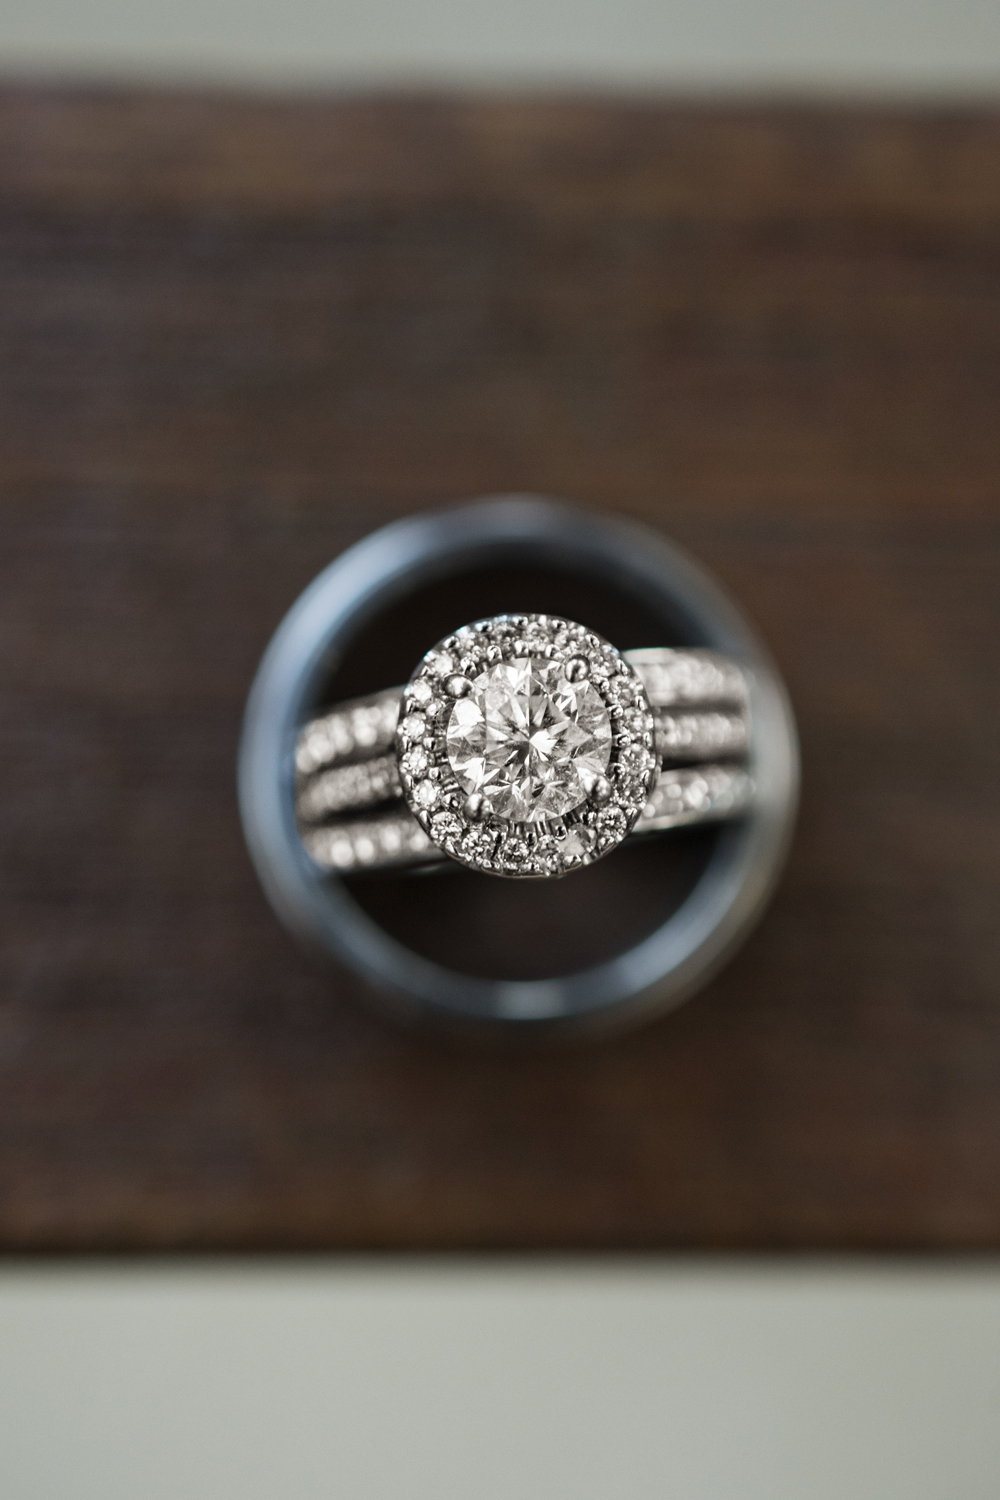 Stunning ring picture on dark wood